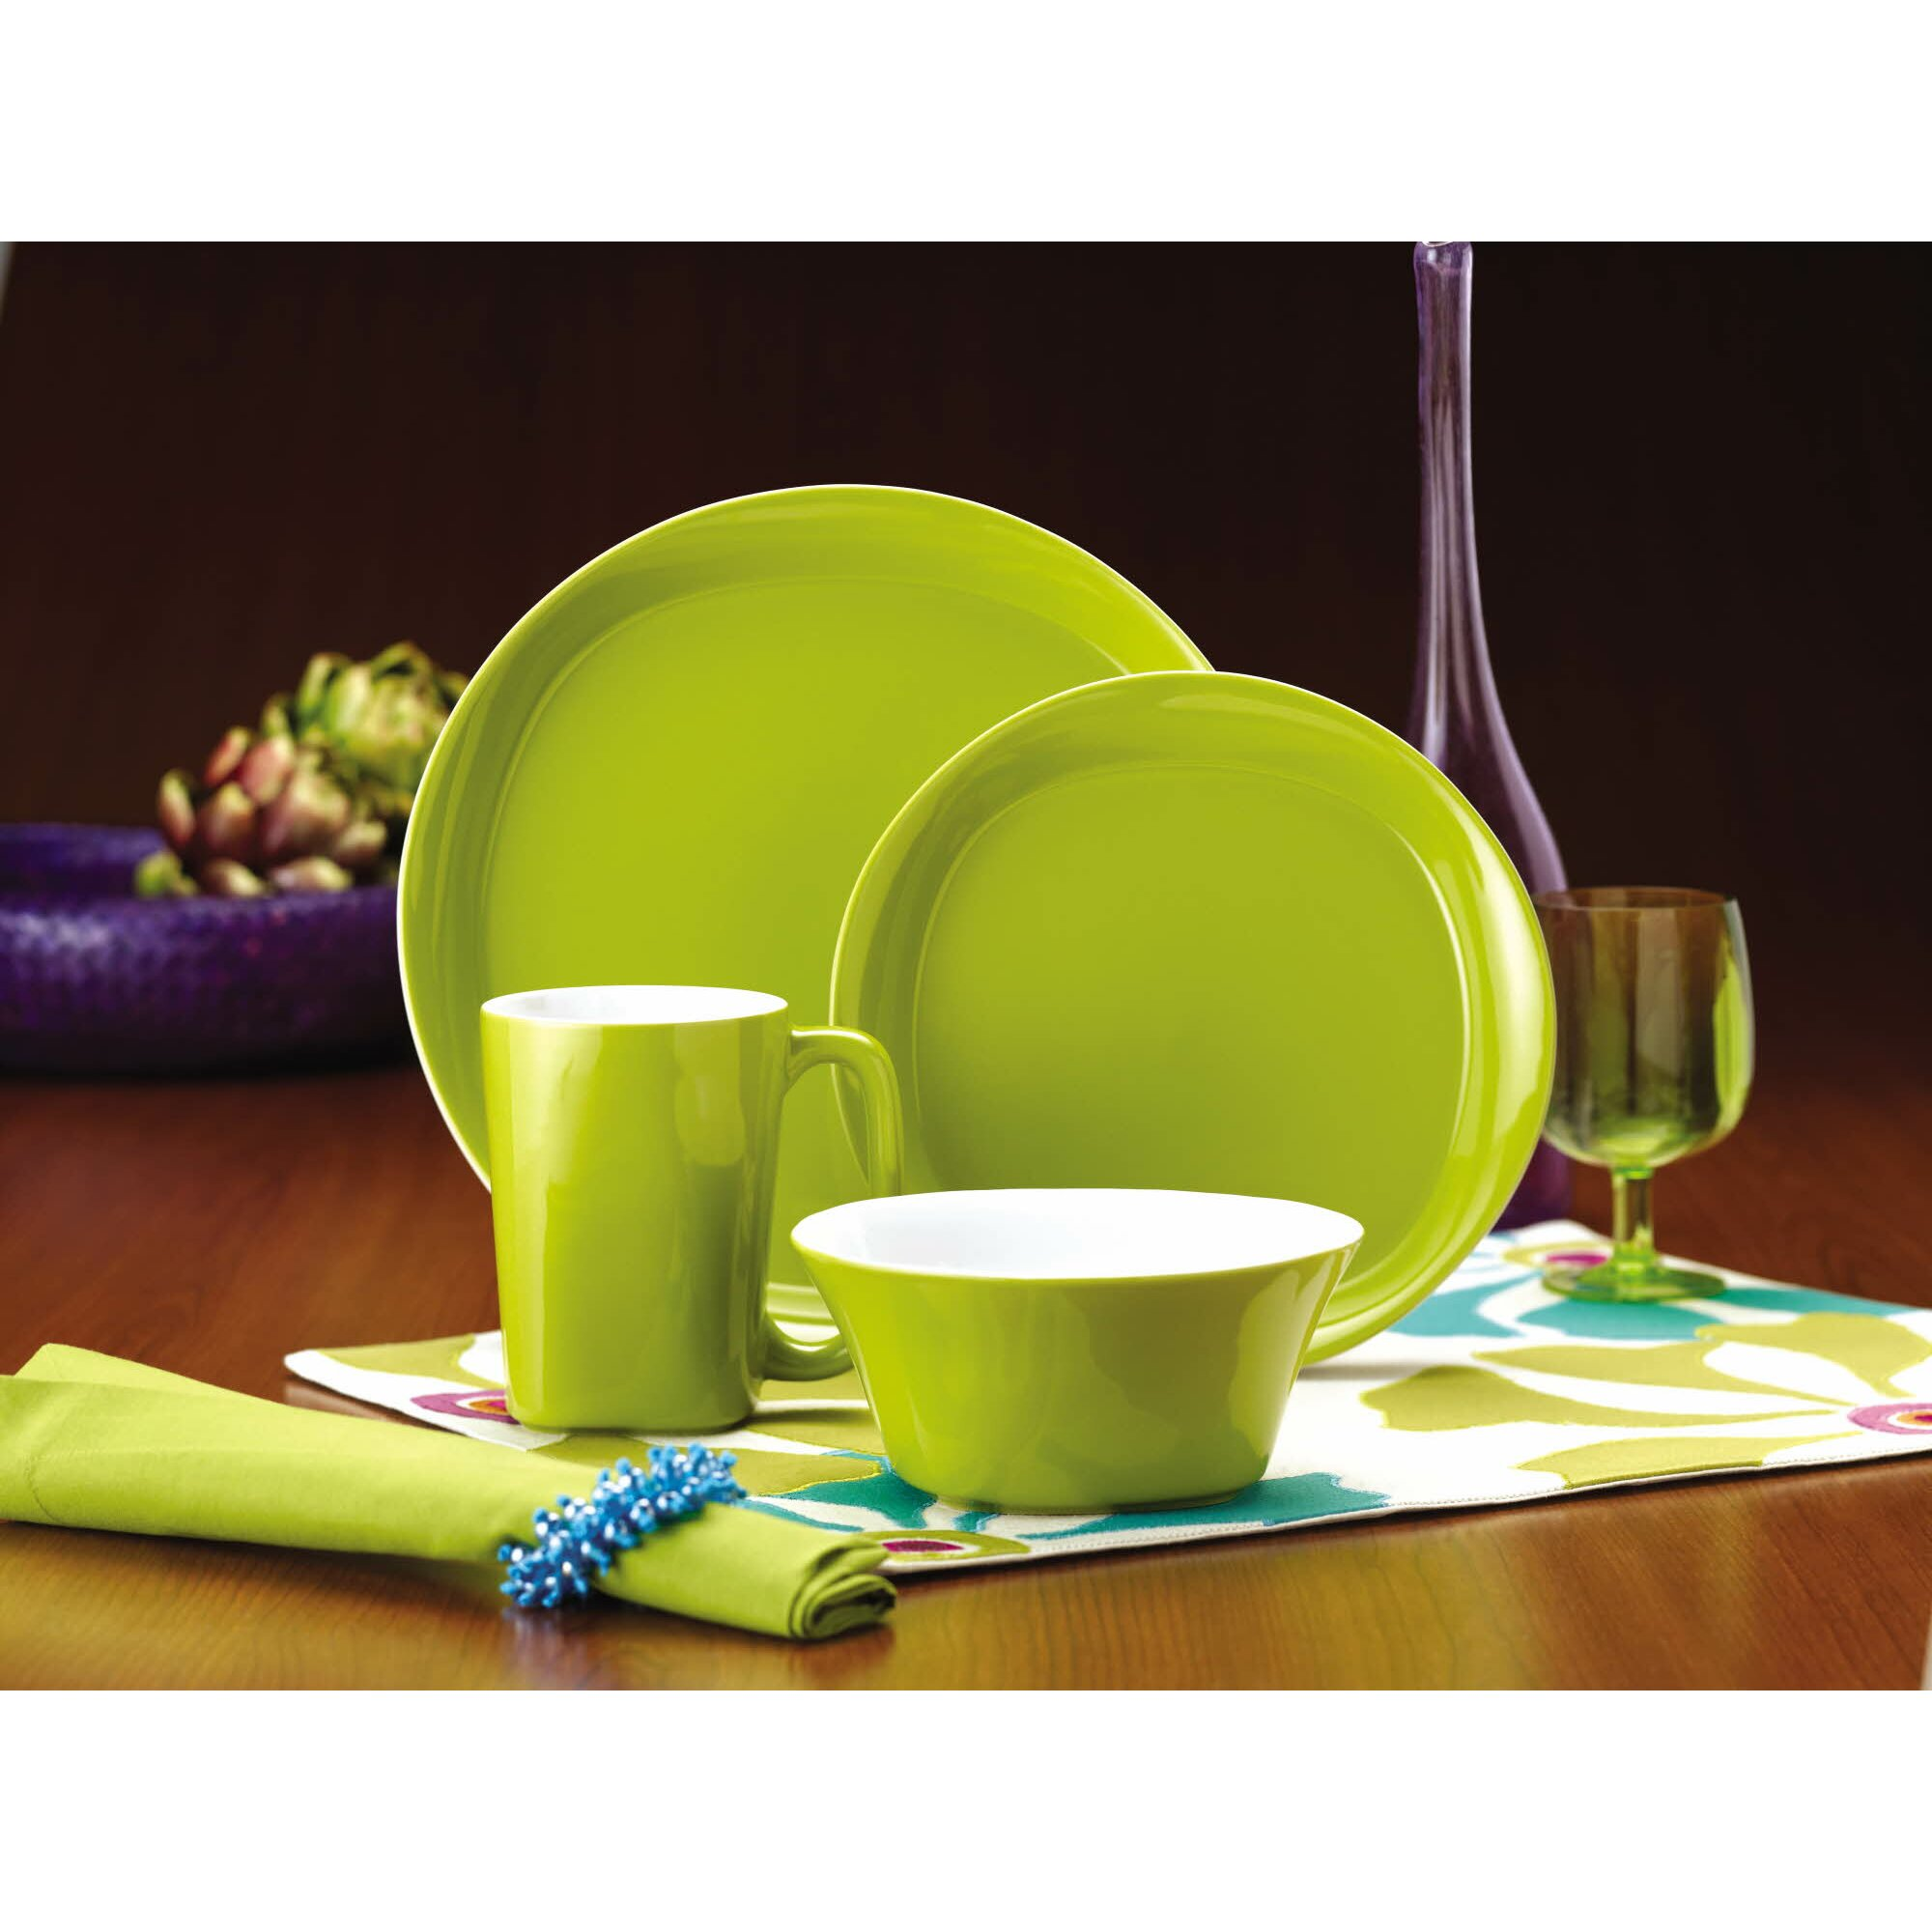 12 Days Of Christmas Dinnerware